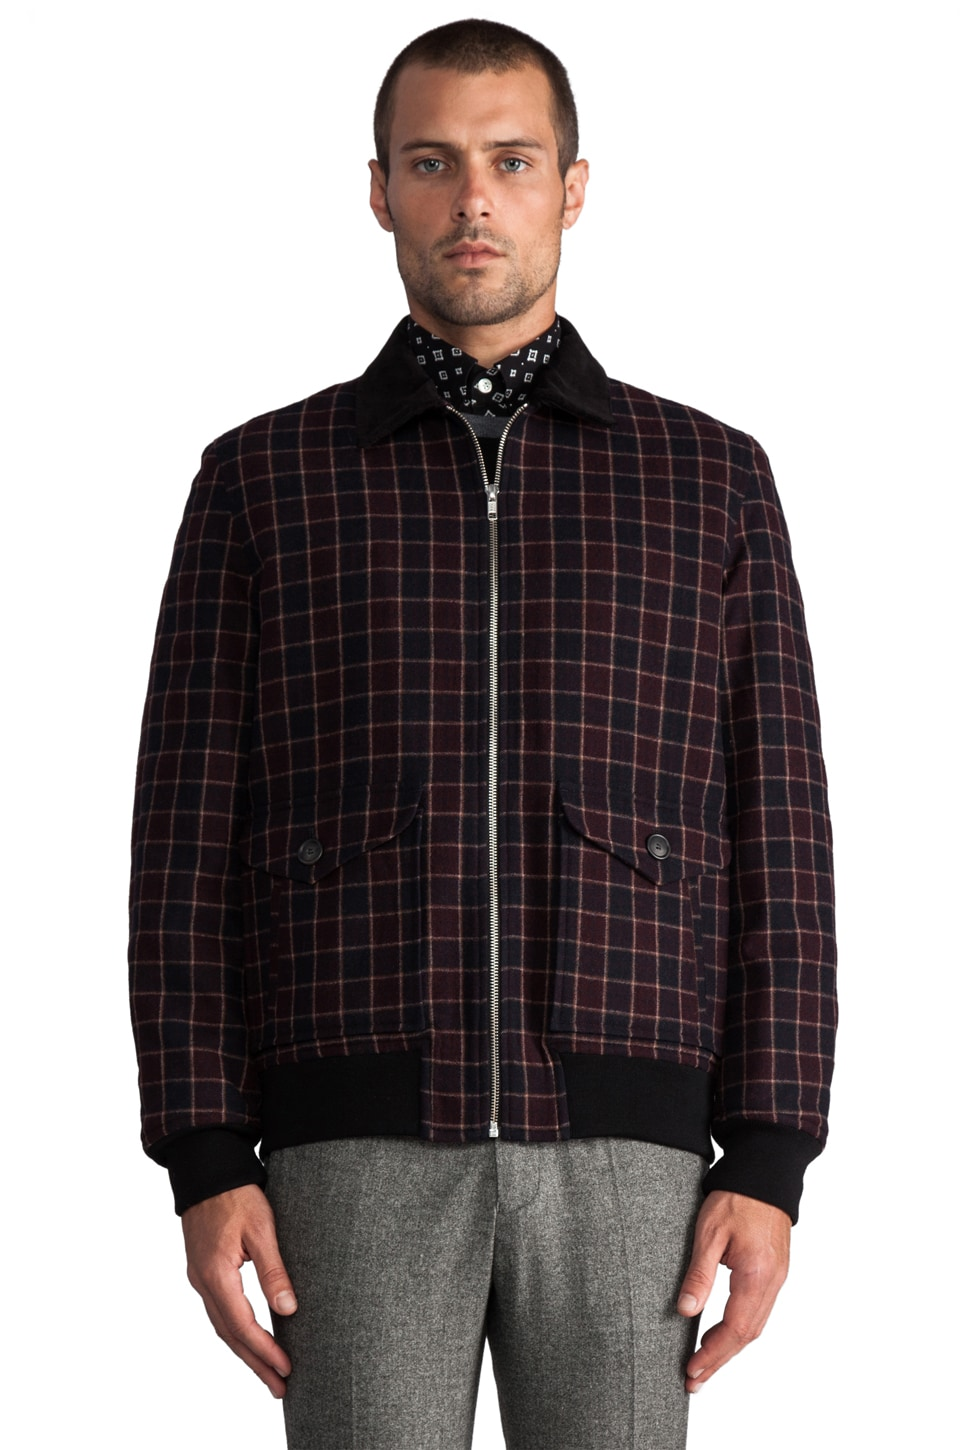 Hentsch Man Flight Jacket in Burgundy Squares